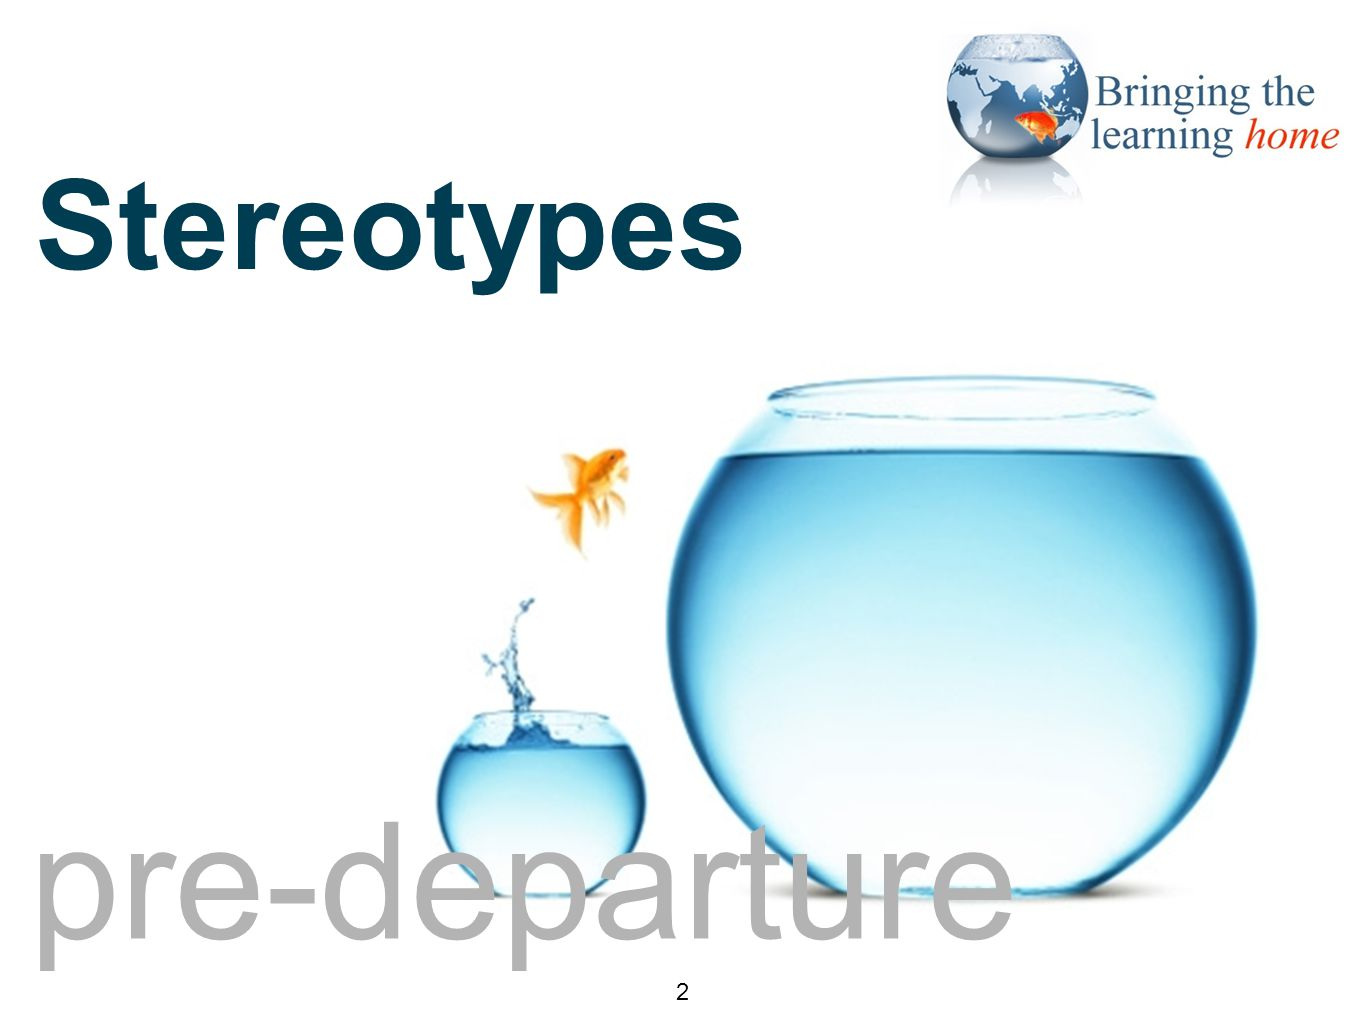 stereotype s positive & negative Overly simplified images of people can be both negative & positive.